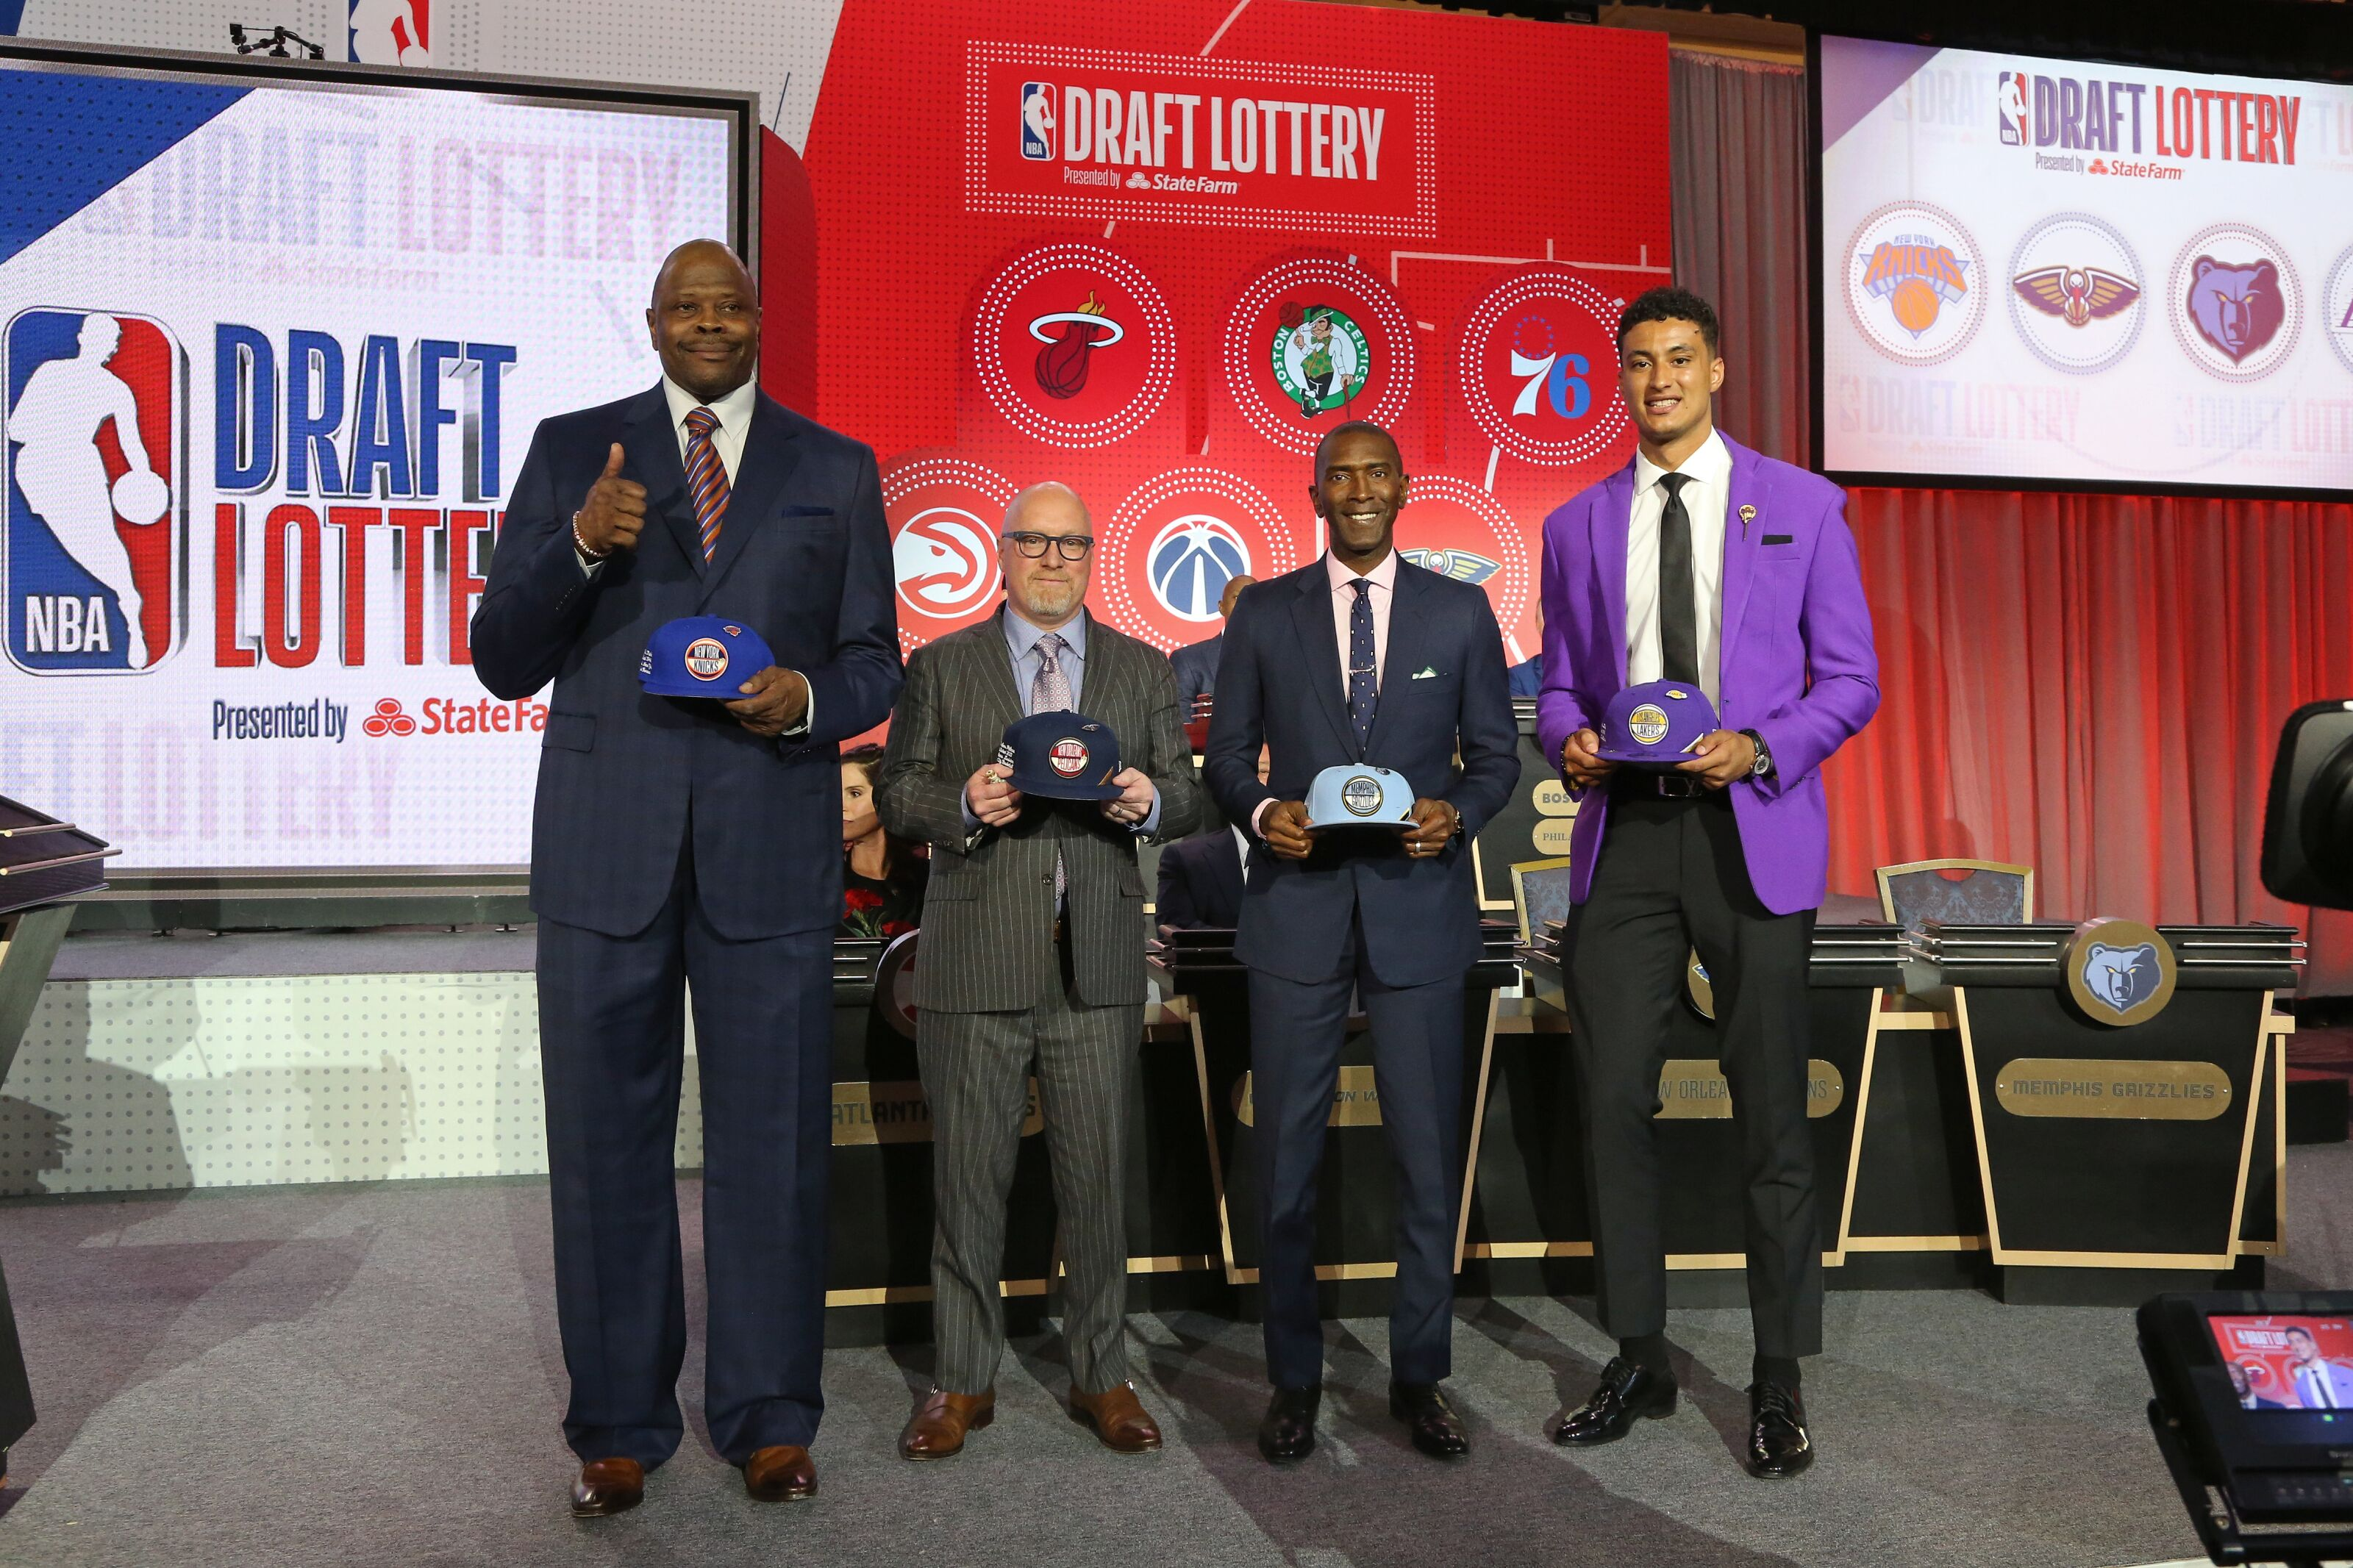 CHICAGO, IL - MAY 14: Patrick Ewing of the New York Knicks, David Griffin of the New Orleans Pelicans, Elliot Perry of the Memphis Grizzlies and Kyle Kuzma #0 of the Los Angeles Lakers pose for a photo on stage at the 2019 NBA Draft Lottery on May 14, 2019 at the Chicago Hilton in Chicago, Illinois. NOTE TO USER: User expressly acknowledges and agrees that, by downloading and/or using this photograph, user is consenting to the terms and conditions of the Getty Images License Agreement. Mandatory Copyright Notice: Copyright 2019 NBAE (Photo by Gary Dineen/NBAE via Getty Images)